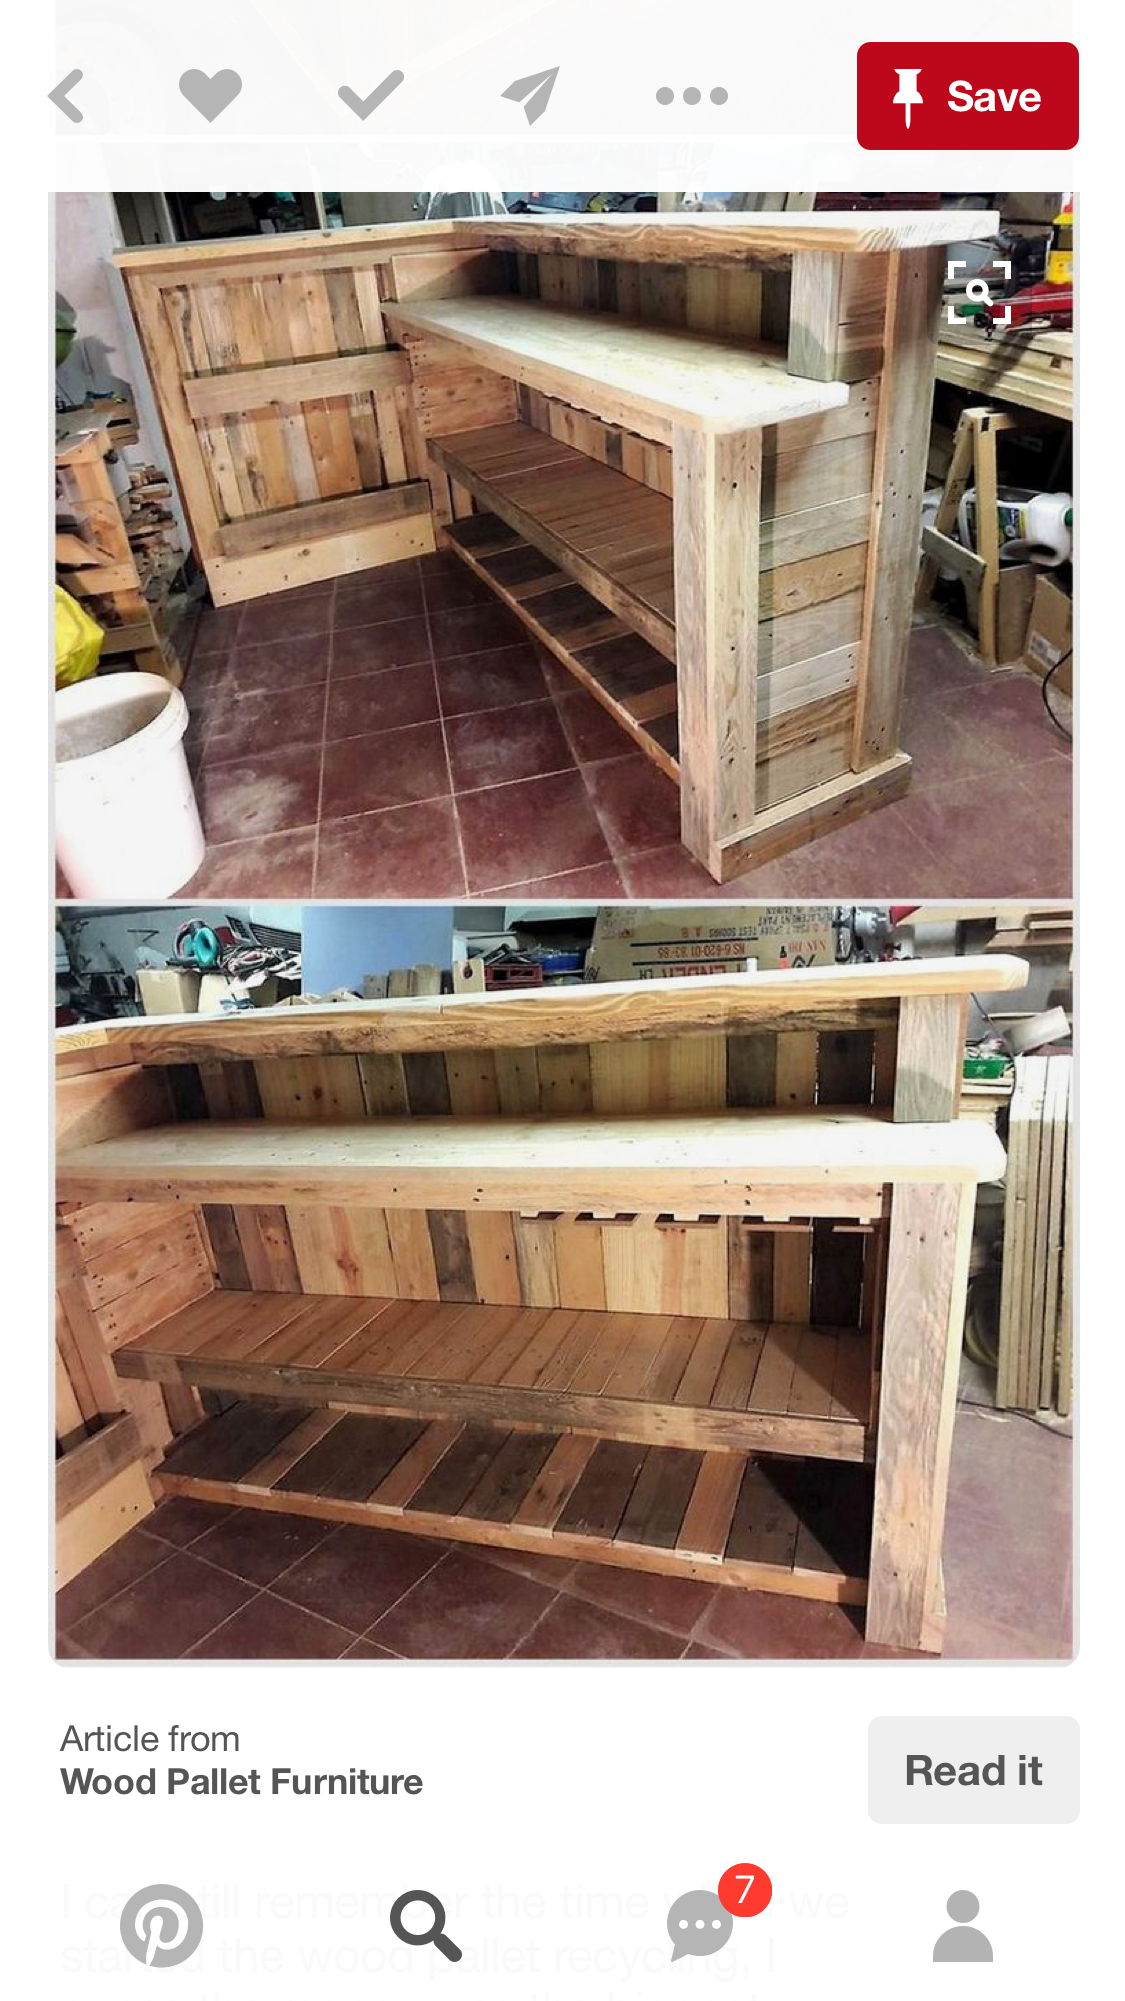 Pin By Megan Klug On Bar Wood Pallet Recycling Wood Pallets Pallet